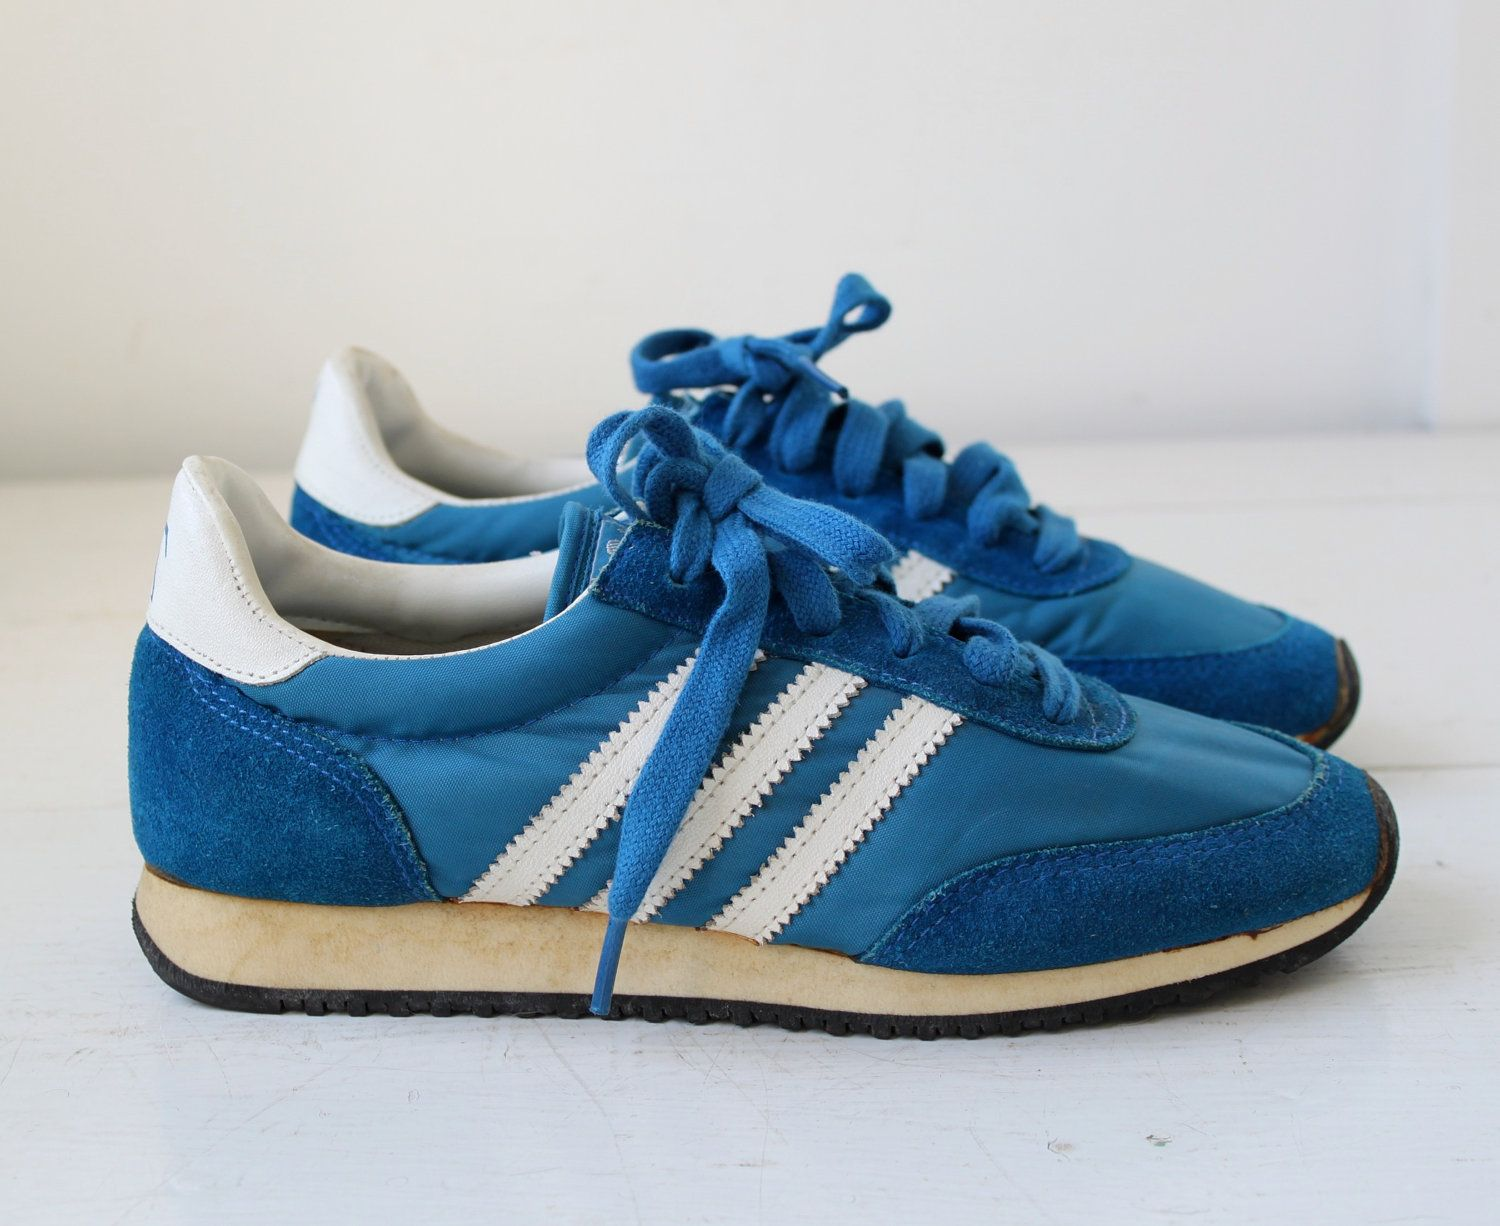 vintage 1970s blue sneakers. JC Penney 3 striped. Retro athletic runners.  Women size 6